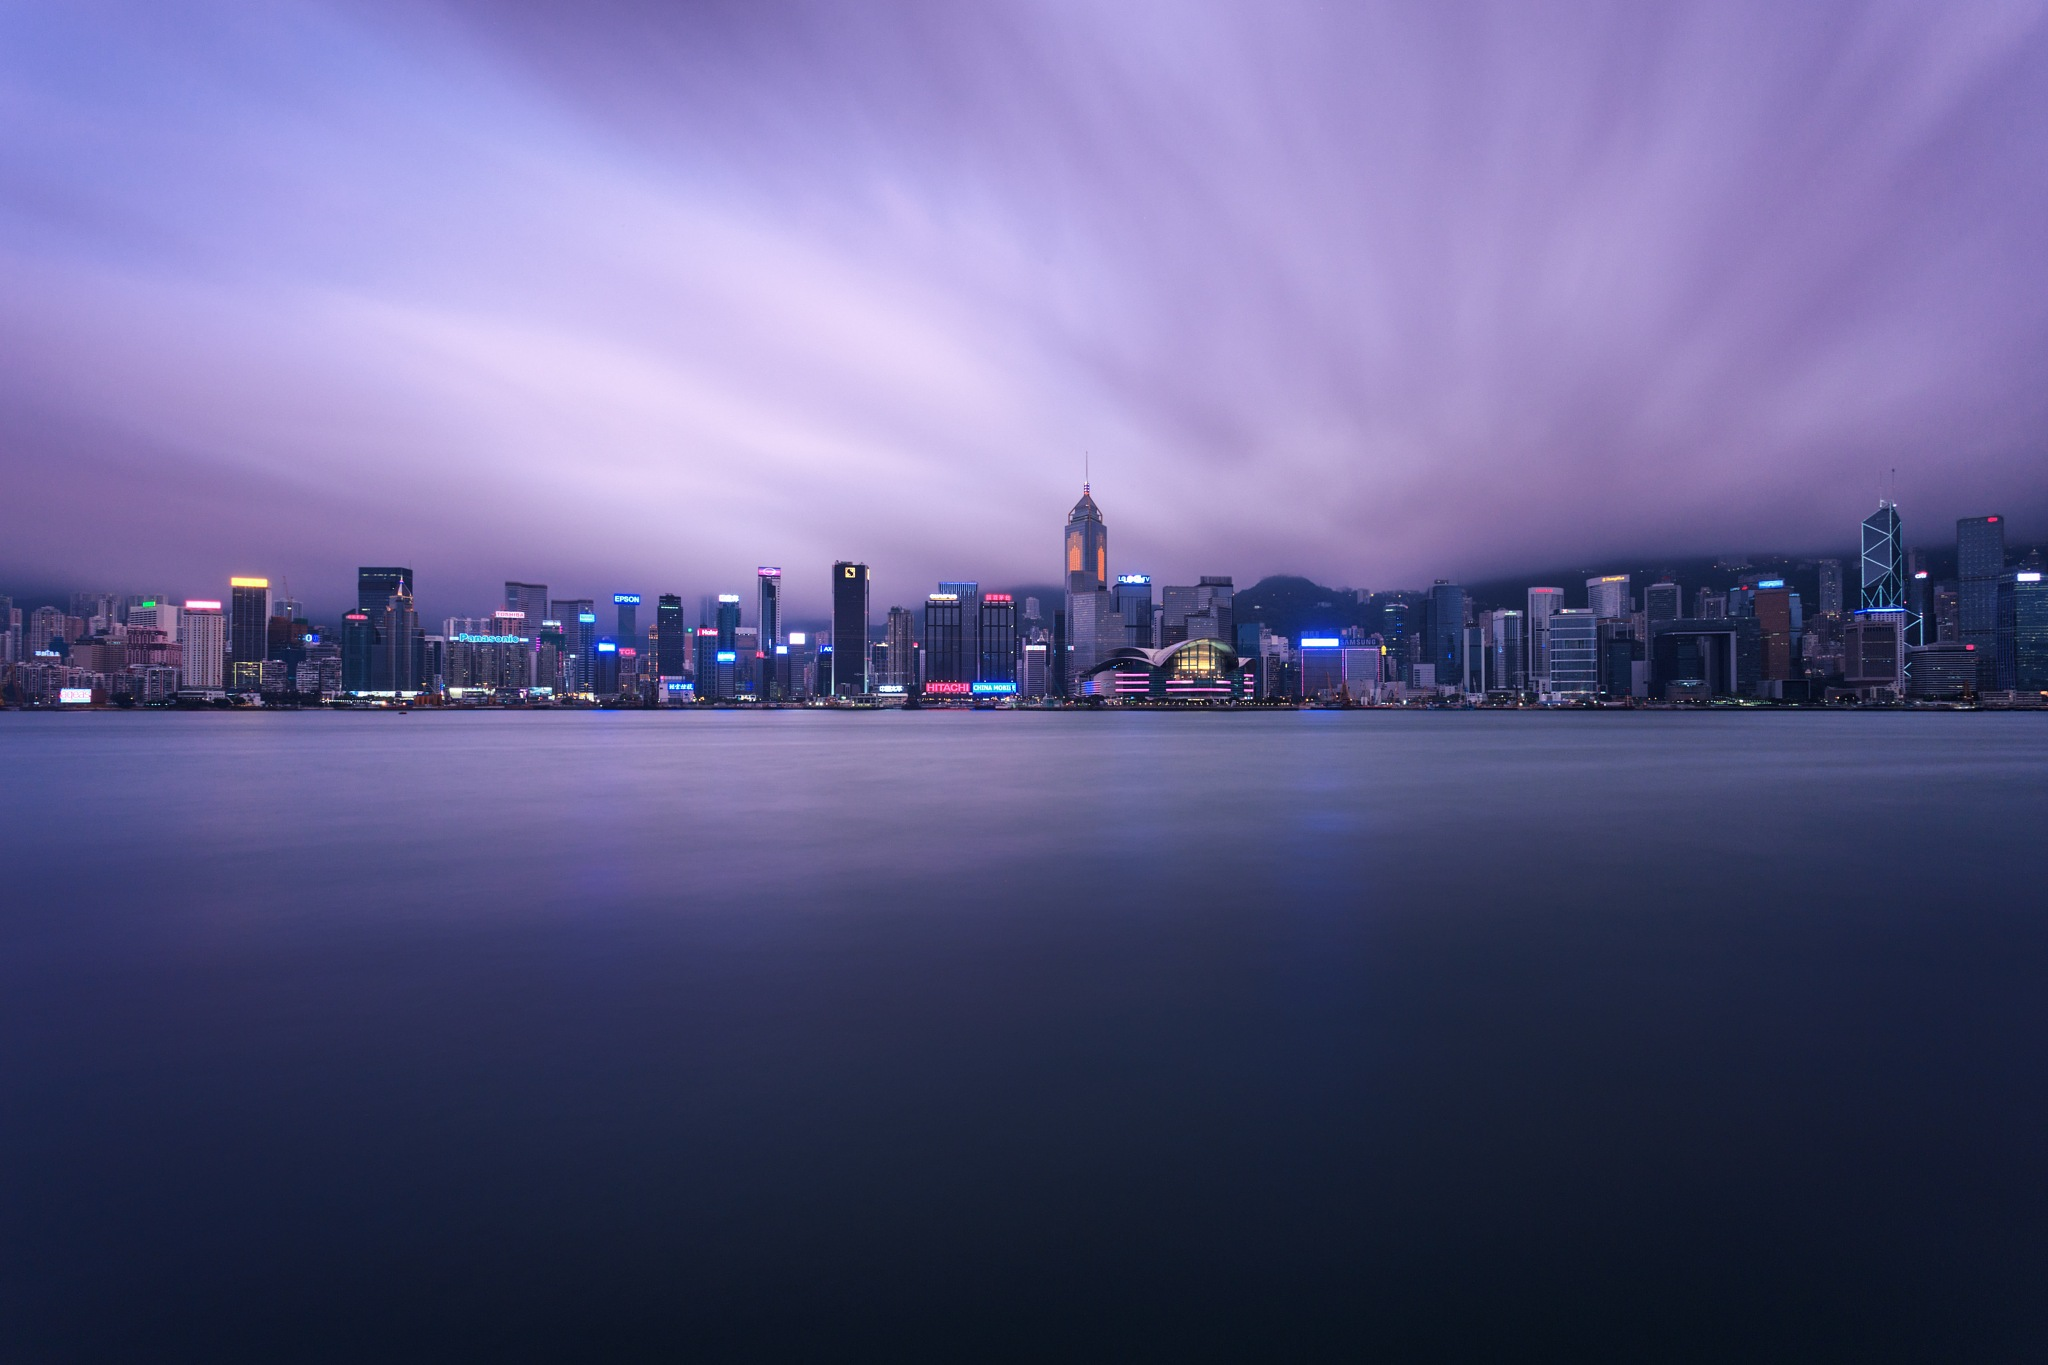 Victoria Harbour HongKong by Chelian